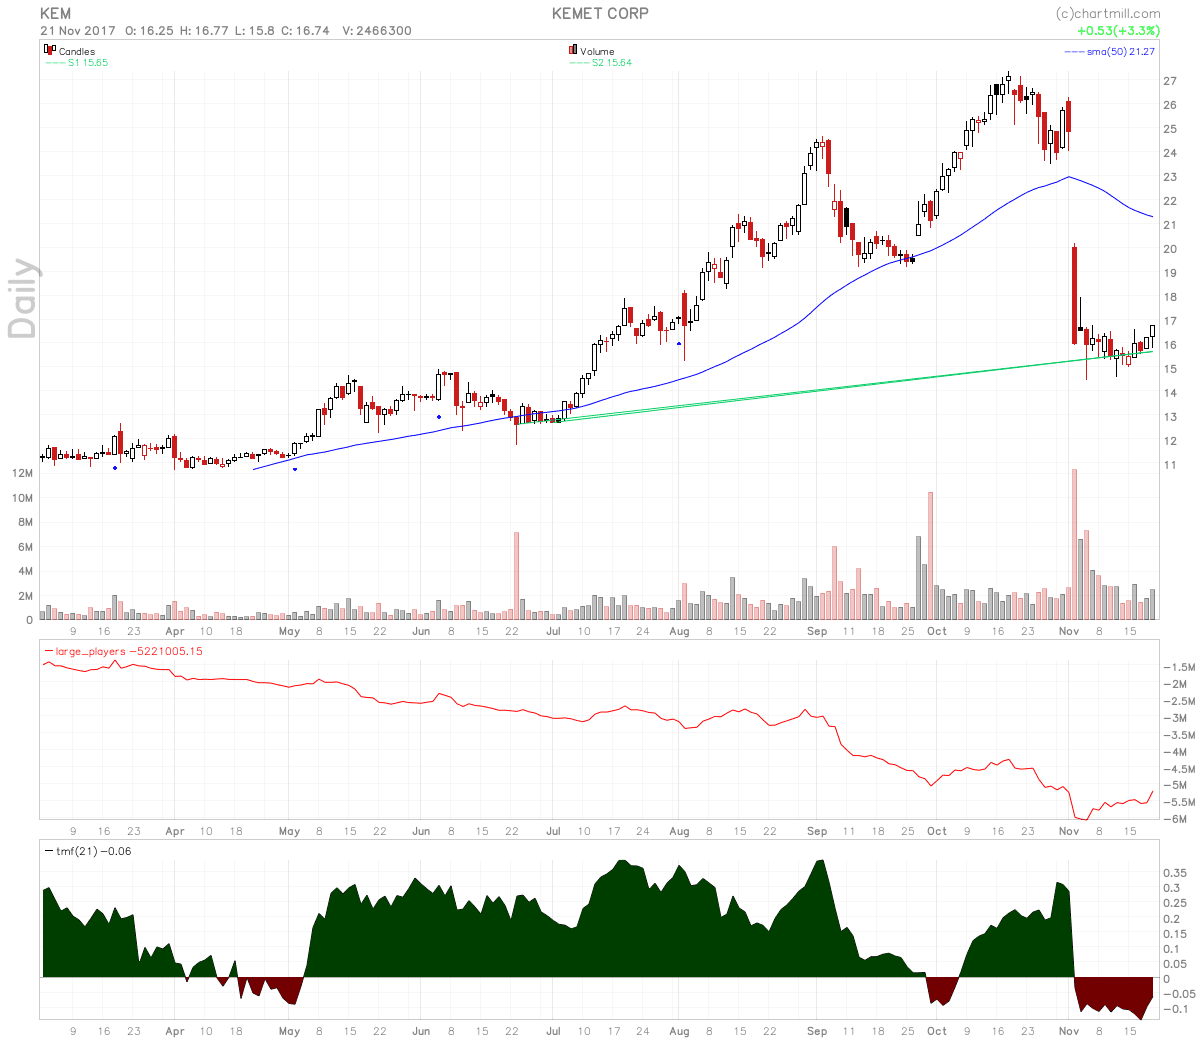 KEMET stock chart shows candle over candle reversal after sell-off.